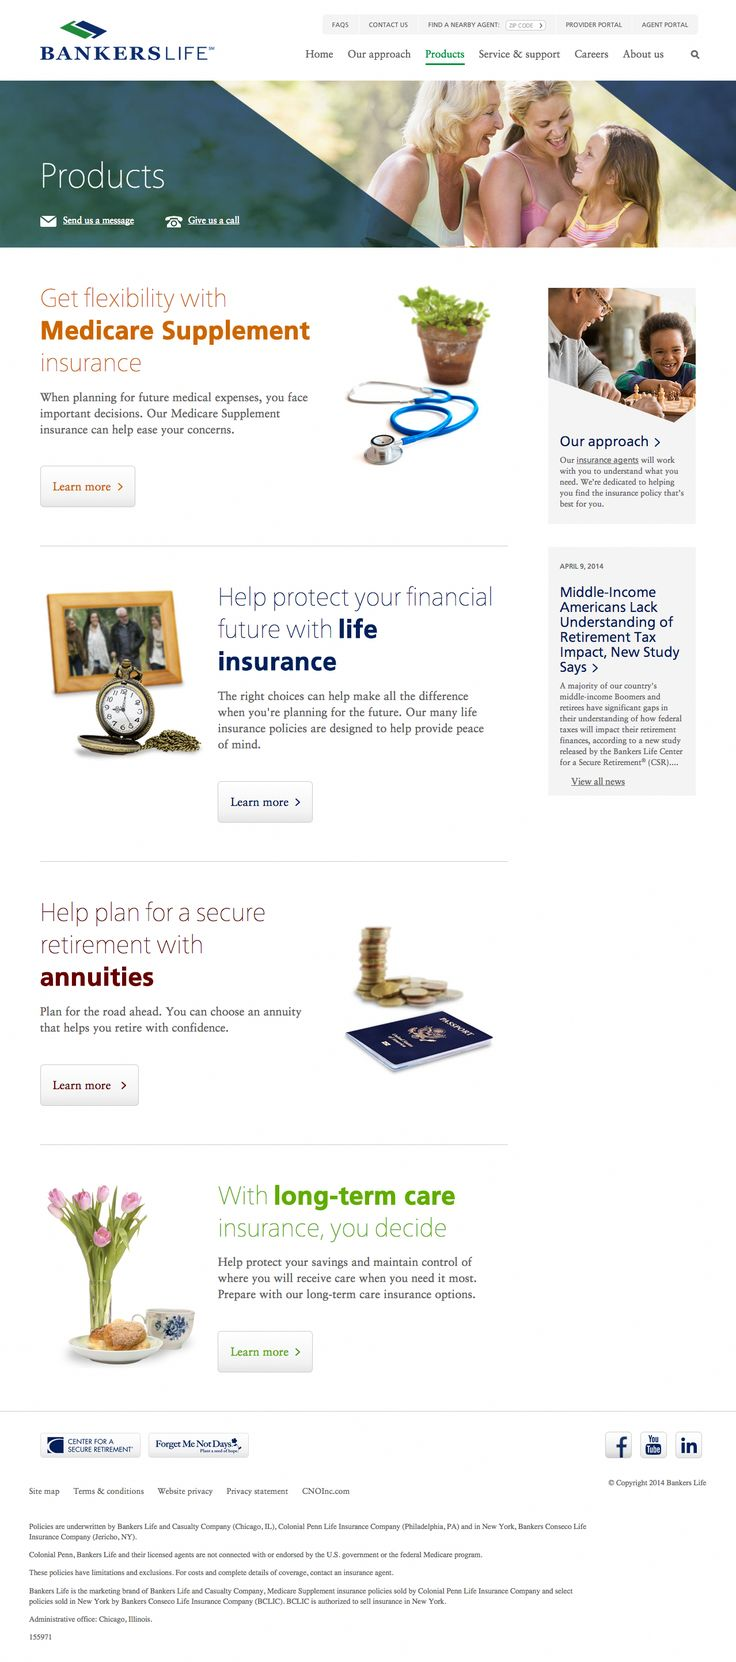 Bankers Life Insurance products Long term care insurance